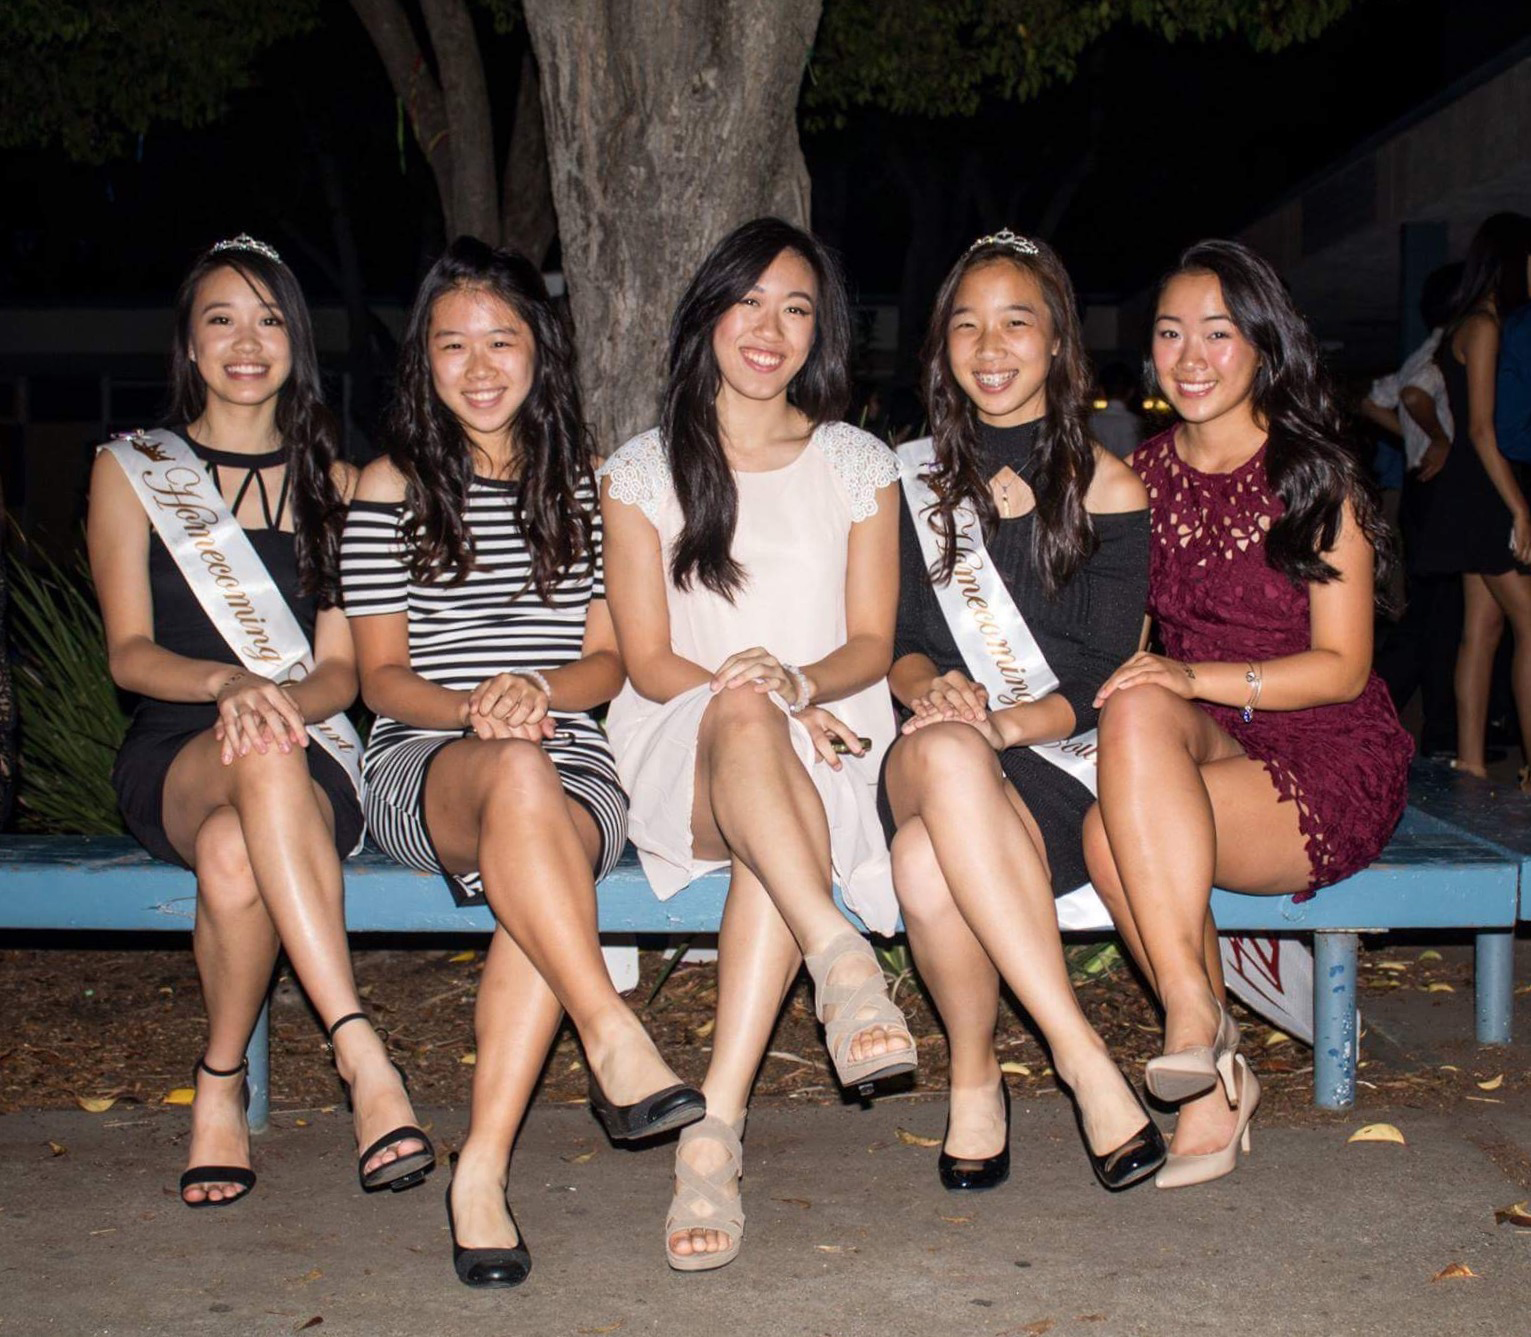 (From left to right) Seniors Jessica Lee, Stephanie Lai, Kelly Leu, Justine Du, and Amanda Tran enjoy their final Homecoming Dance at Irvington  (Photo: Jeffrey Ding).